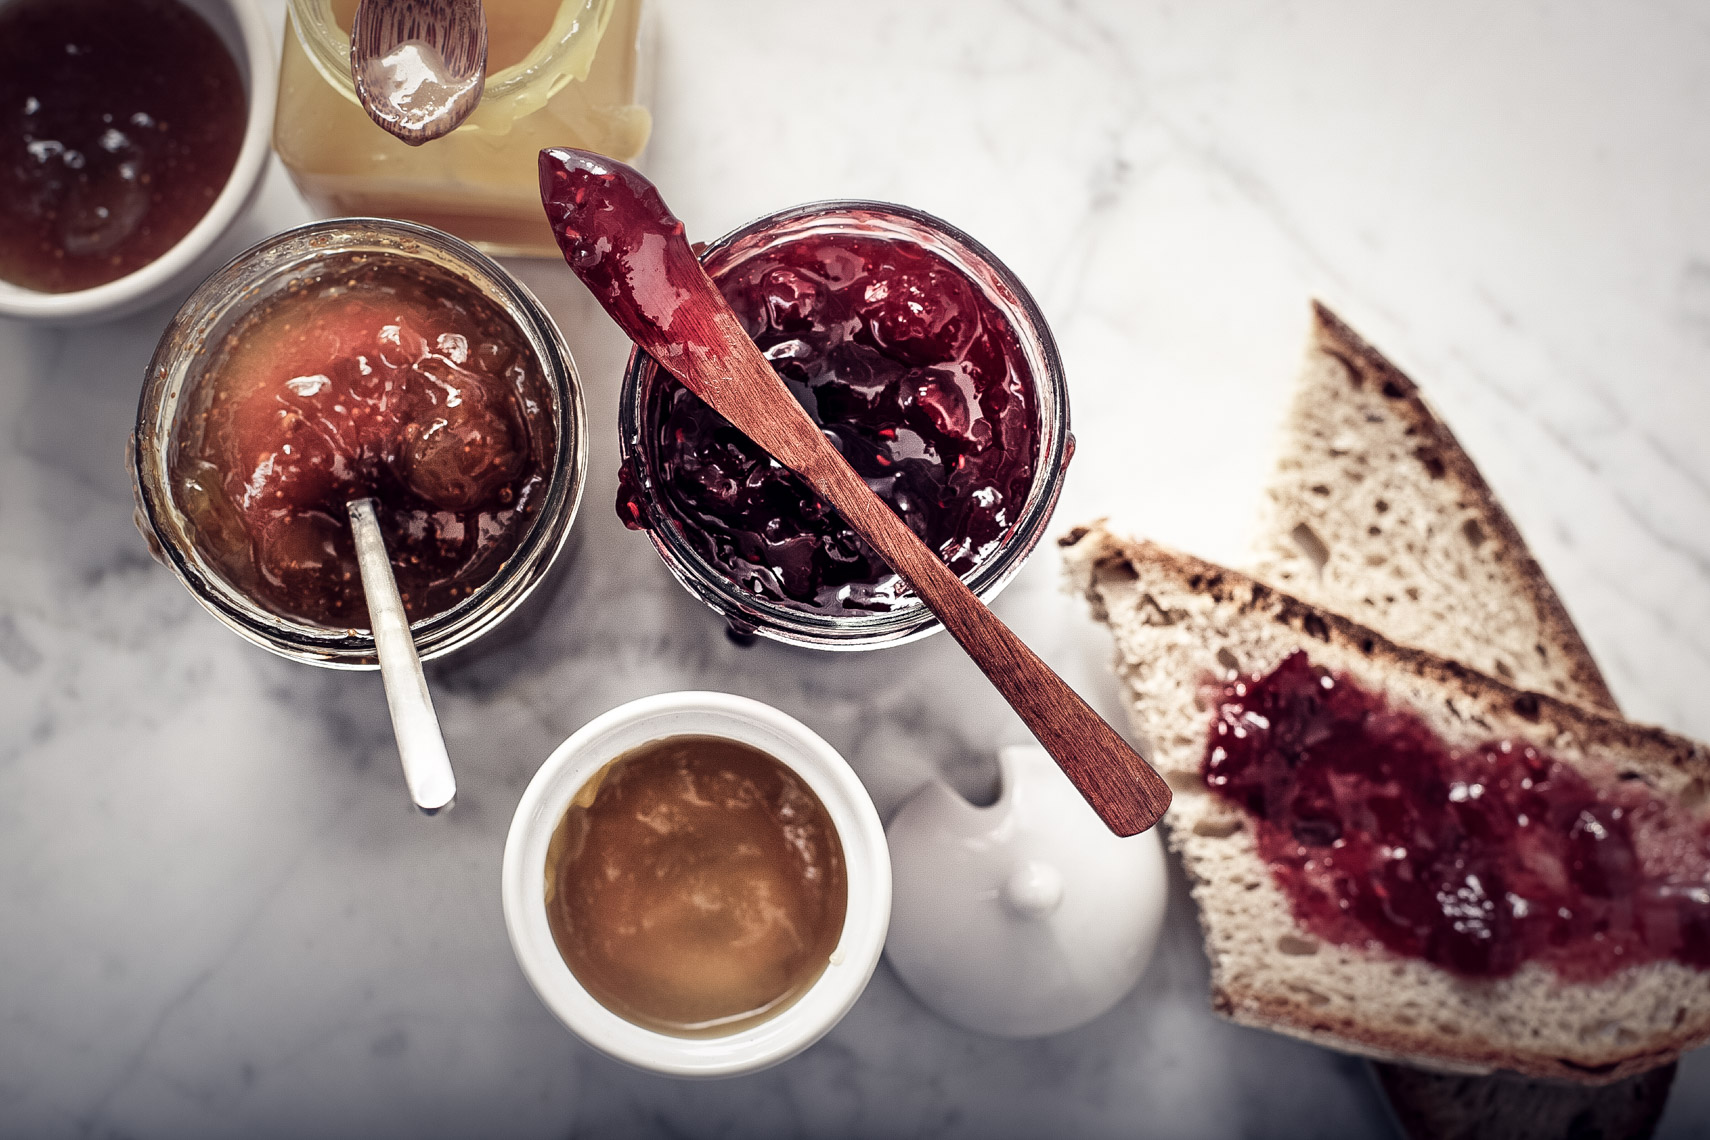 assortment of jams and jelly spread on sliced bread